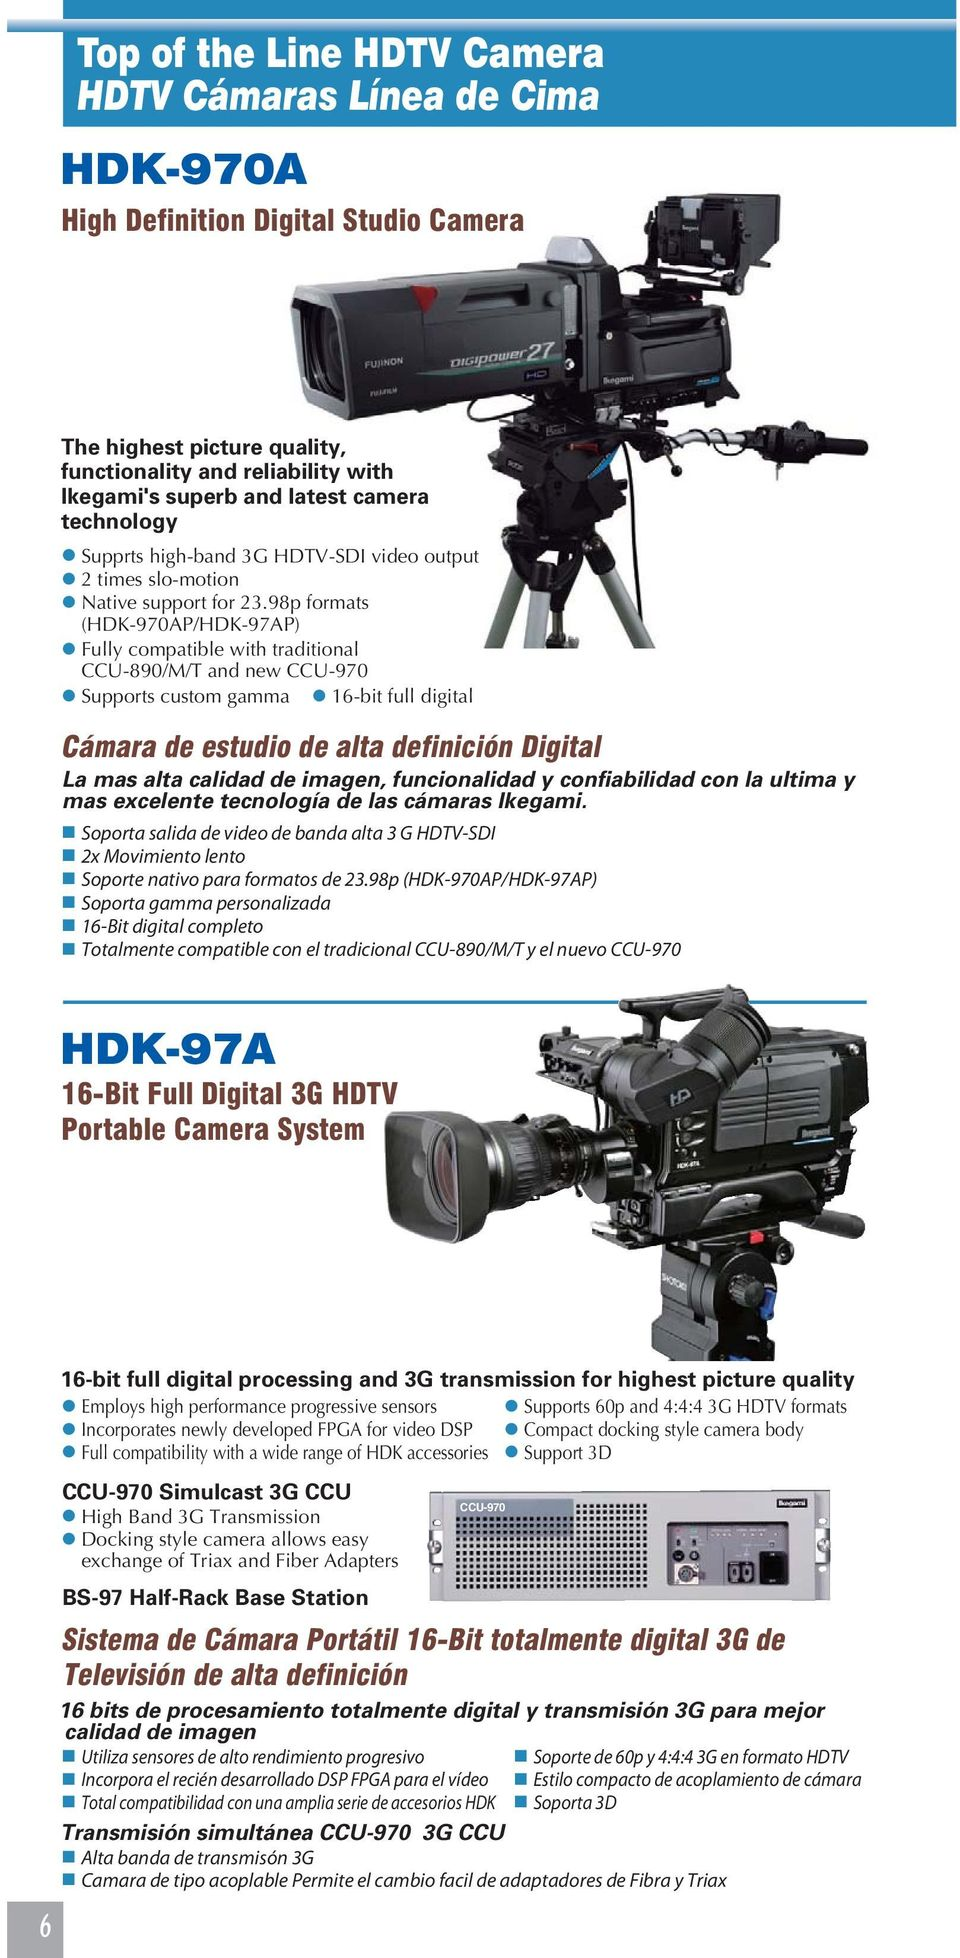 98p formats (HDK-970AP/HDK-97AP) Fully compatible with traditional CCU-890/M/T and new CCU-970 Supports custom gamma 16-bit full digital Cámara de estudio de alta definición Digital La mas alta